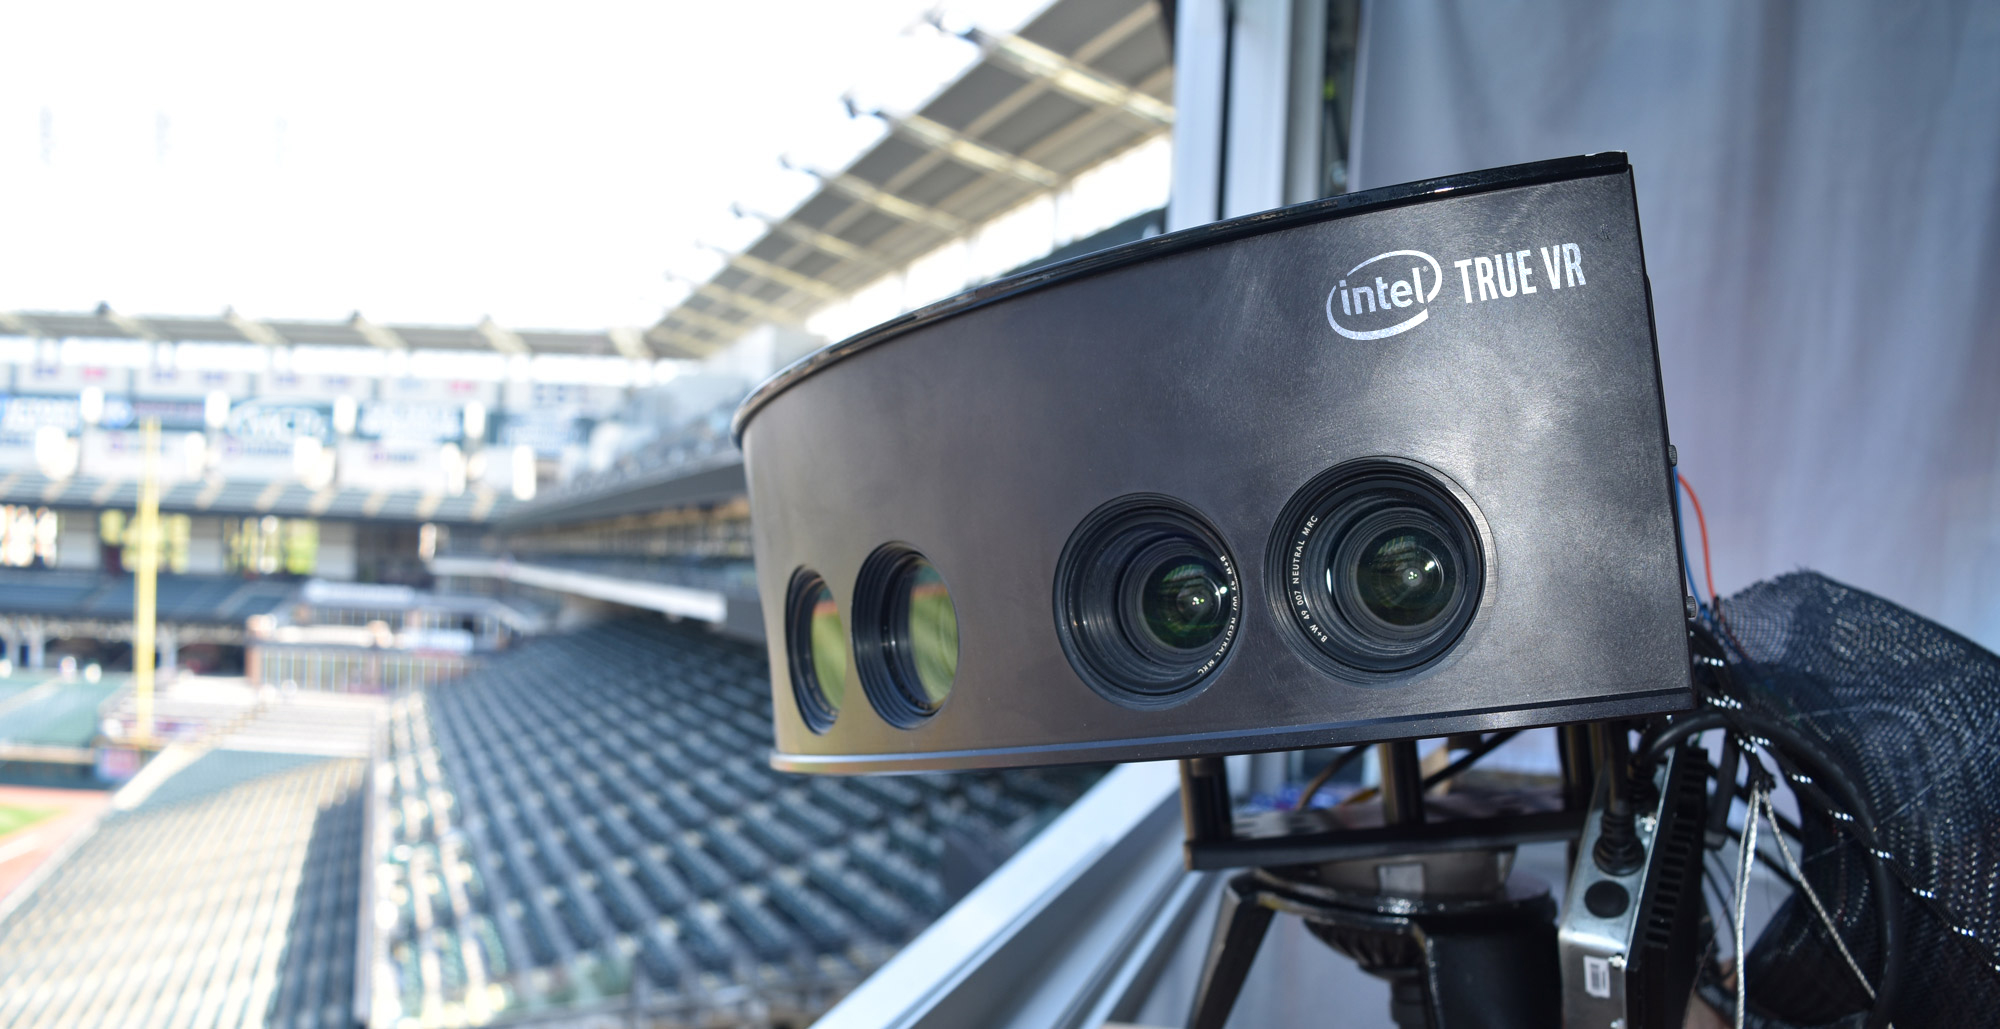 Intel to Begin Broadcasting MLB Games in VR with New Three Year Deal